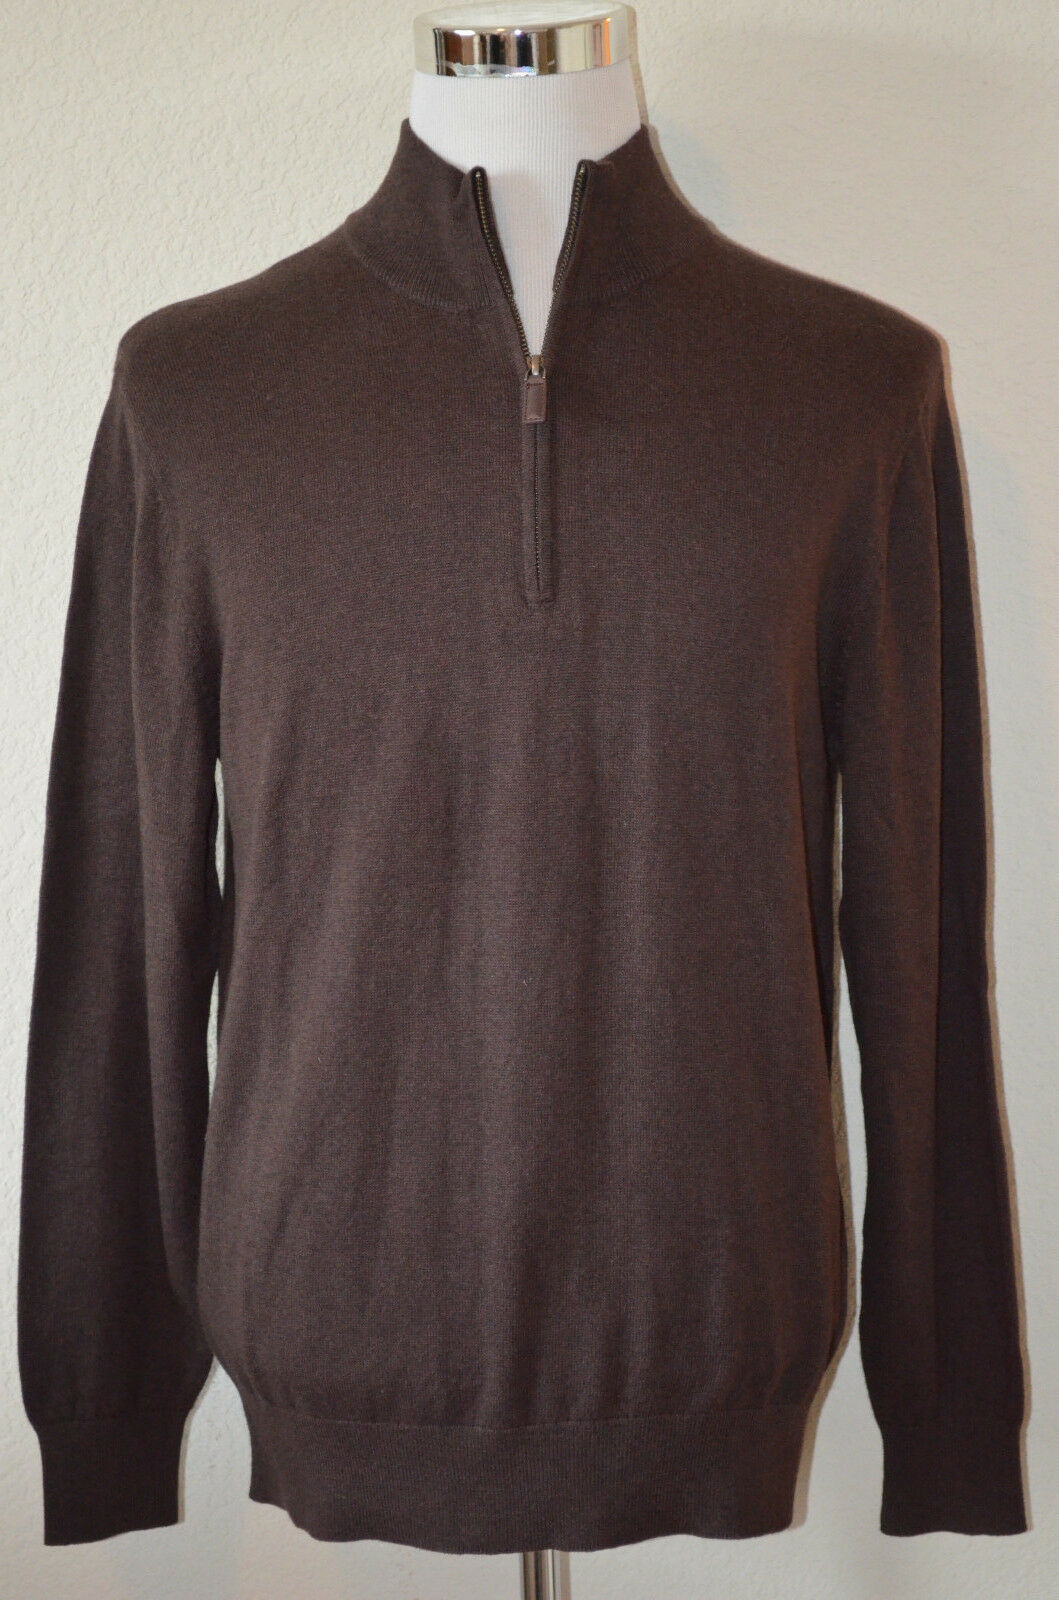 Perry Ellis - Man's XXL Chocolate Brown HALF-ZIP Stand Collar Sweater  (M63)